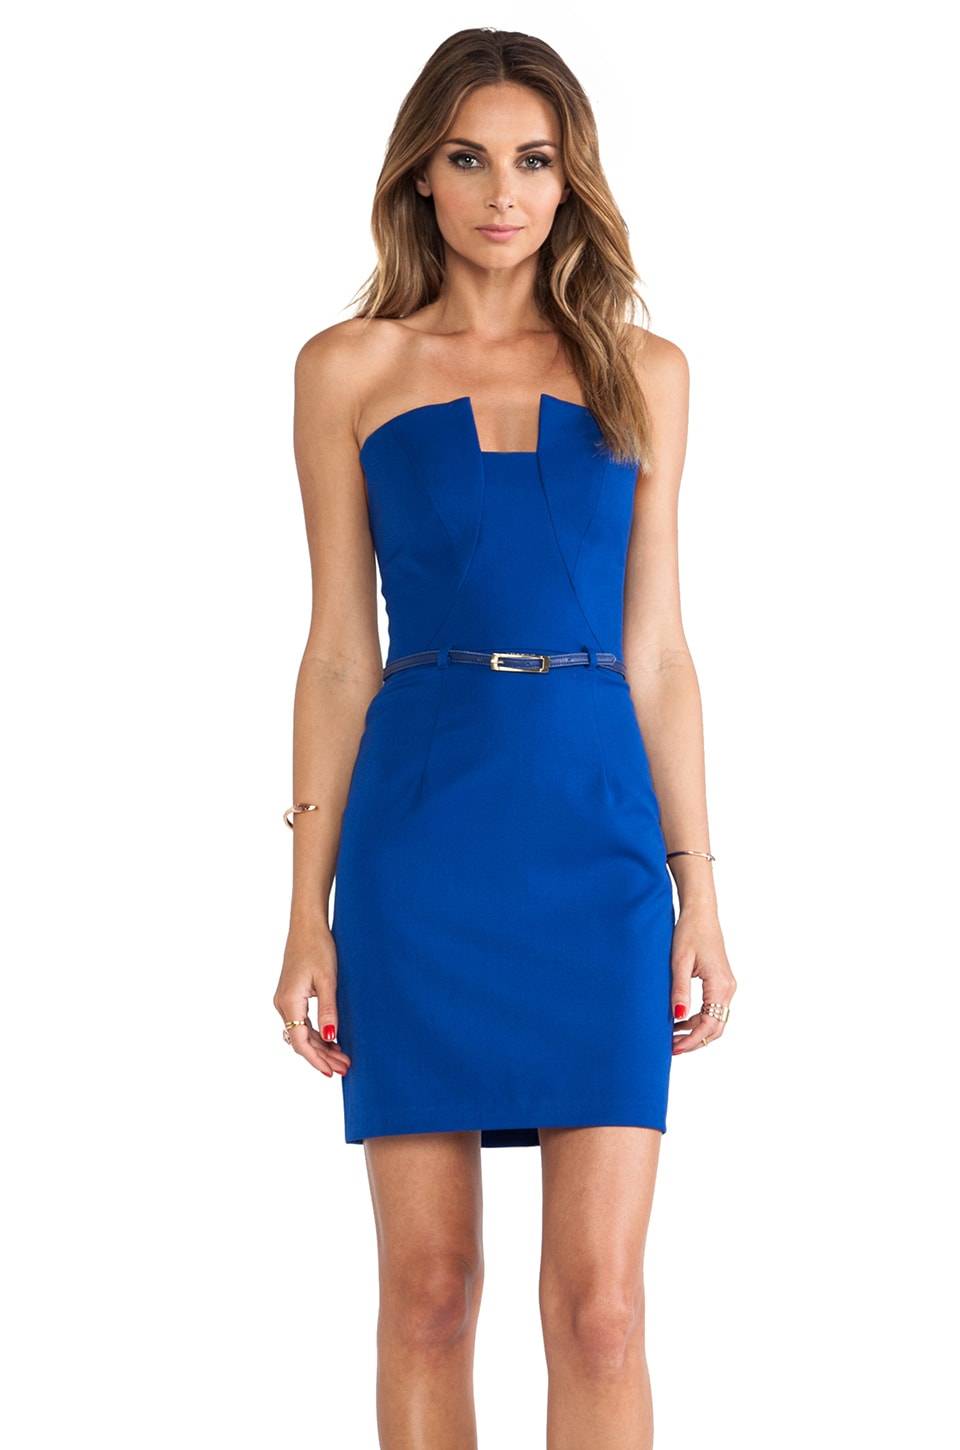 Black Halo Lena Mini Dress in Cobalt